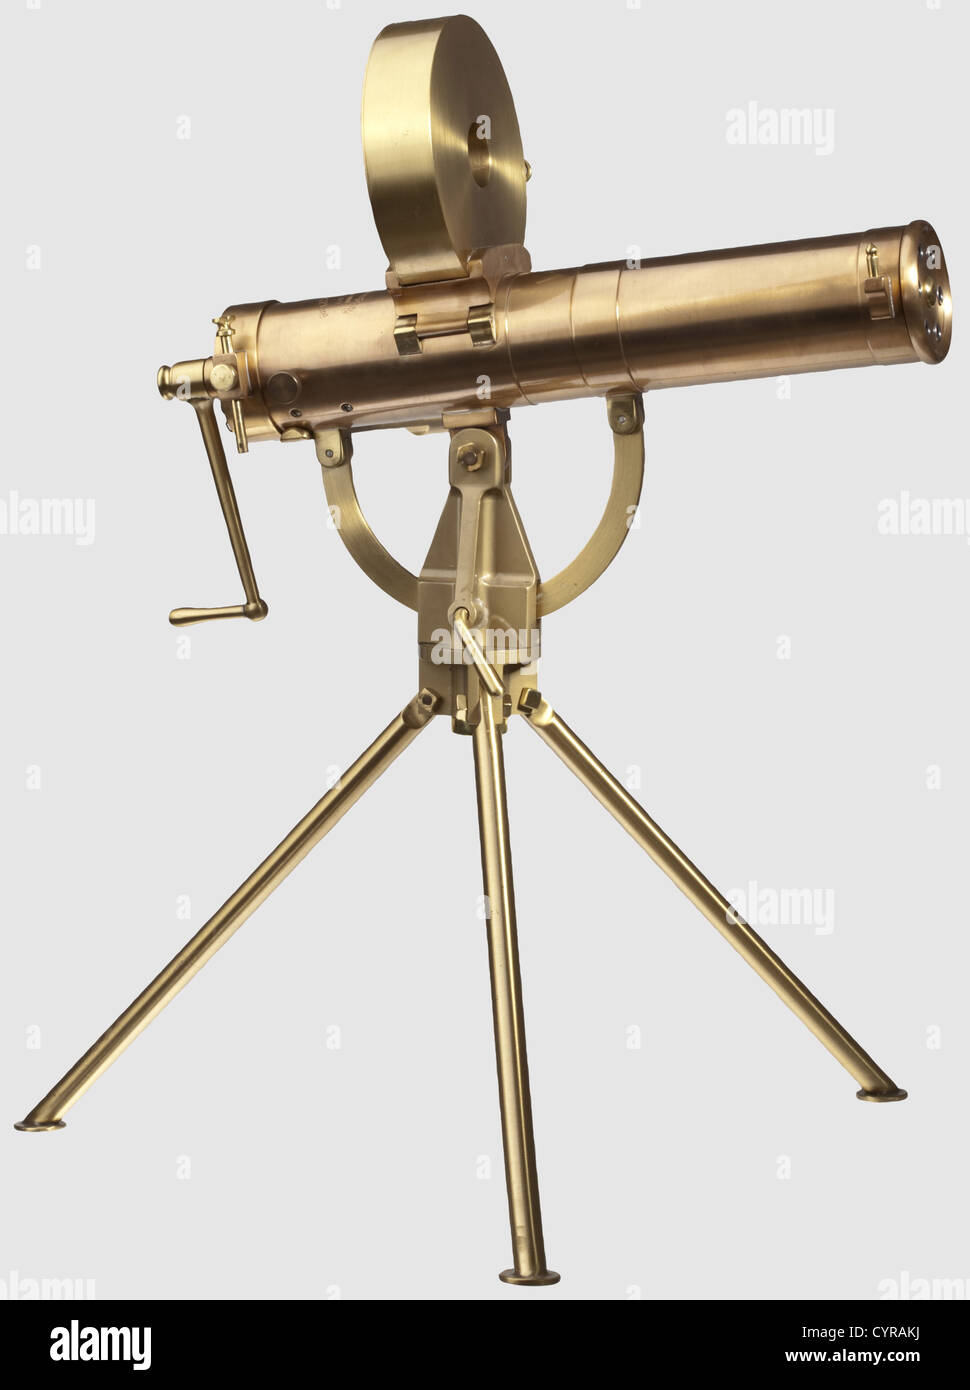 Gatling Gun Stock Photos & Gatling Gun Stock Images - Alamy